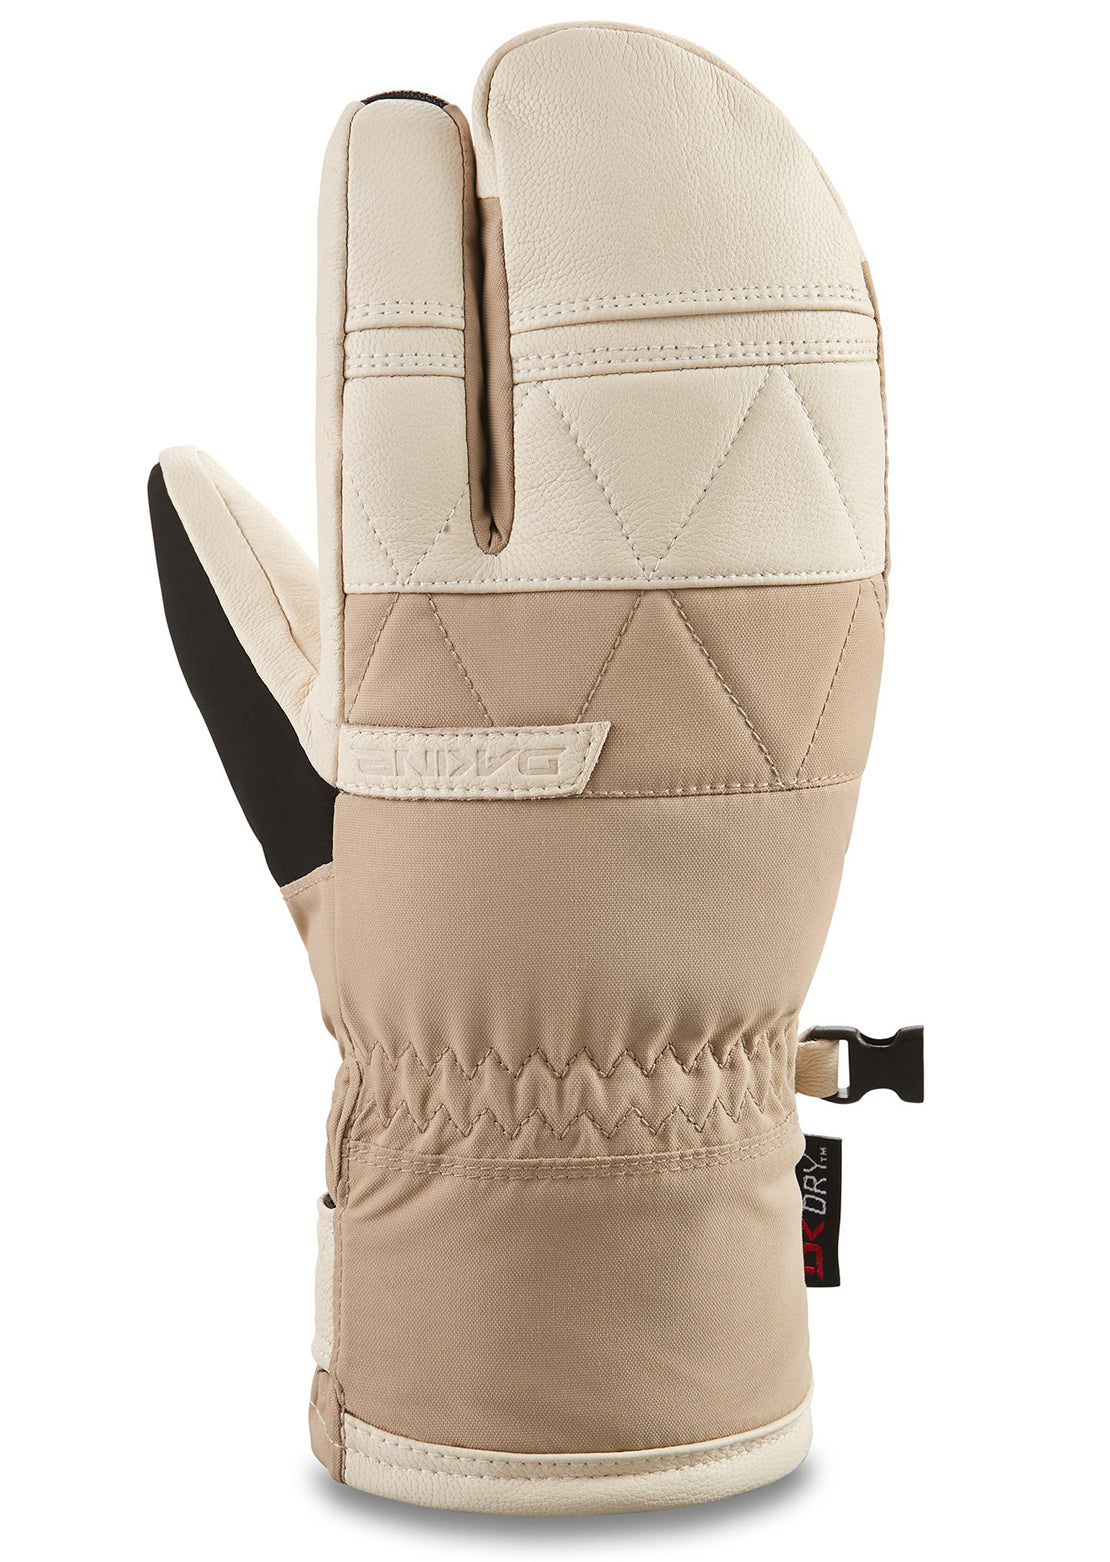 Dakine Women's Fleetwood Trigger Mitts Stone/Turtledove